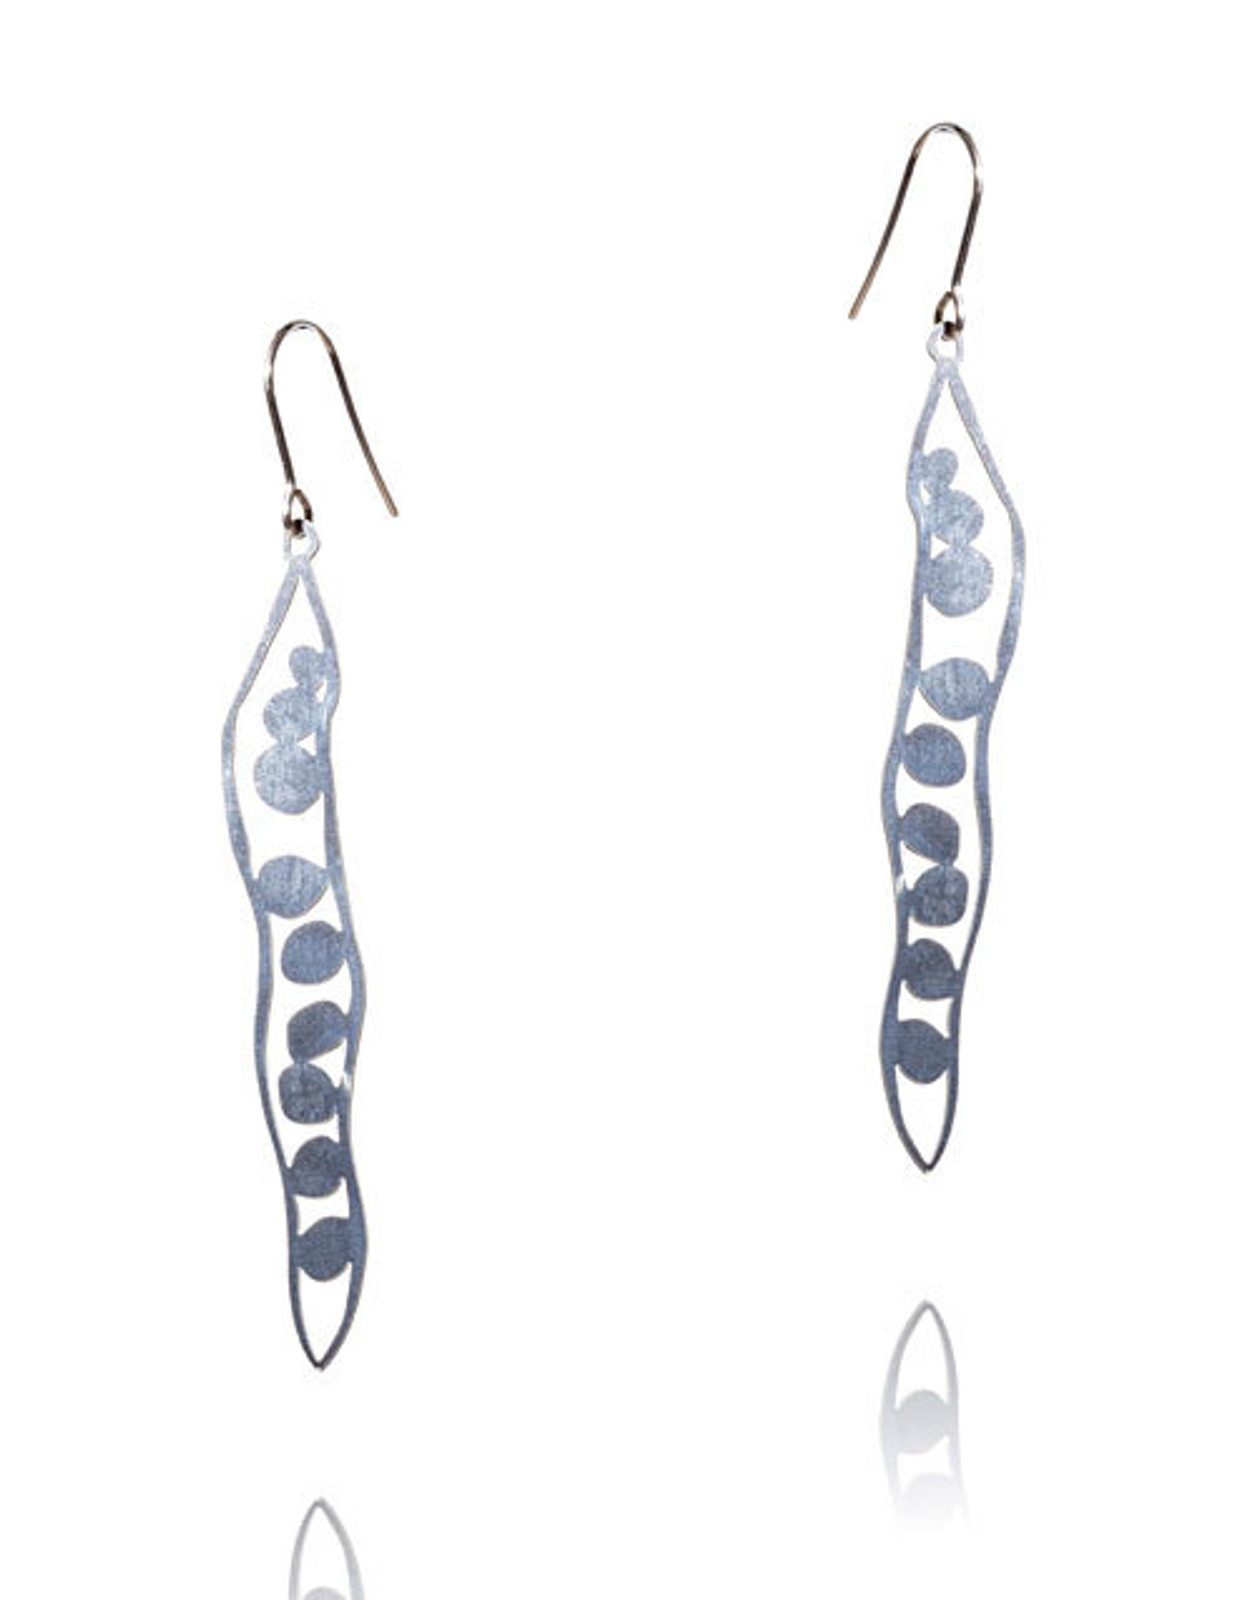 Redbud Earrings